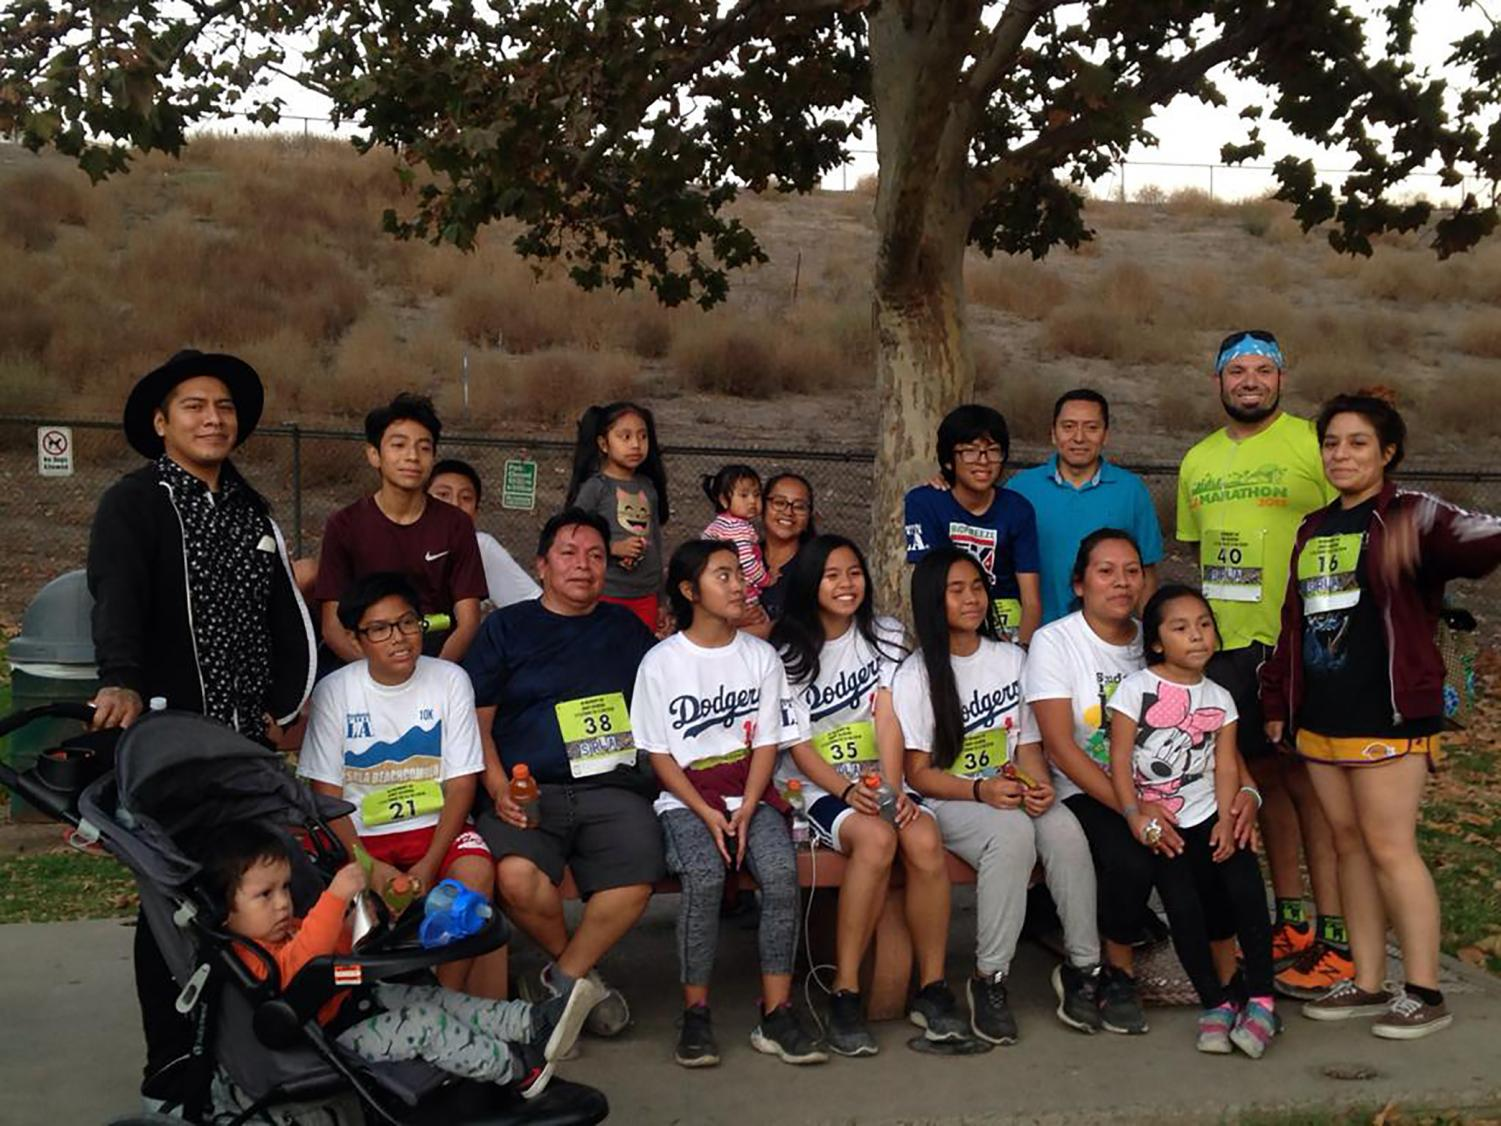 A group photo of everyone who participated in the run is shared. Before the vigil, everyone honored Andy by participating in one of his favorite activities, running.